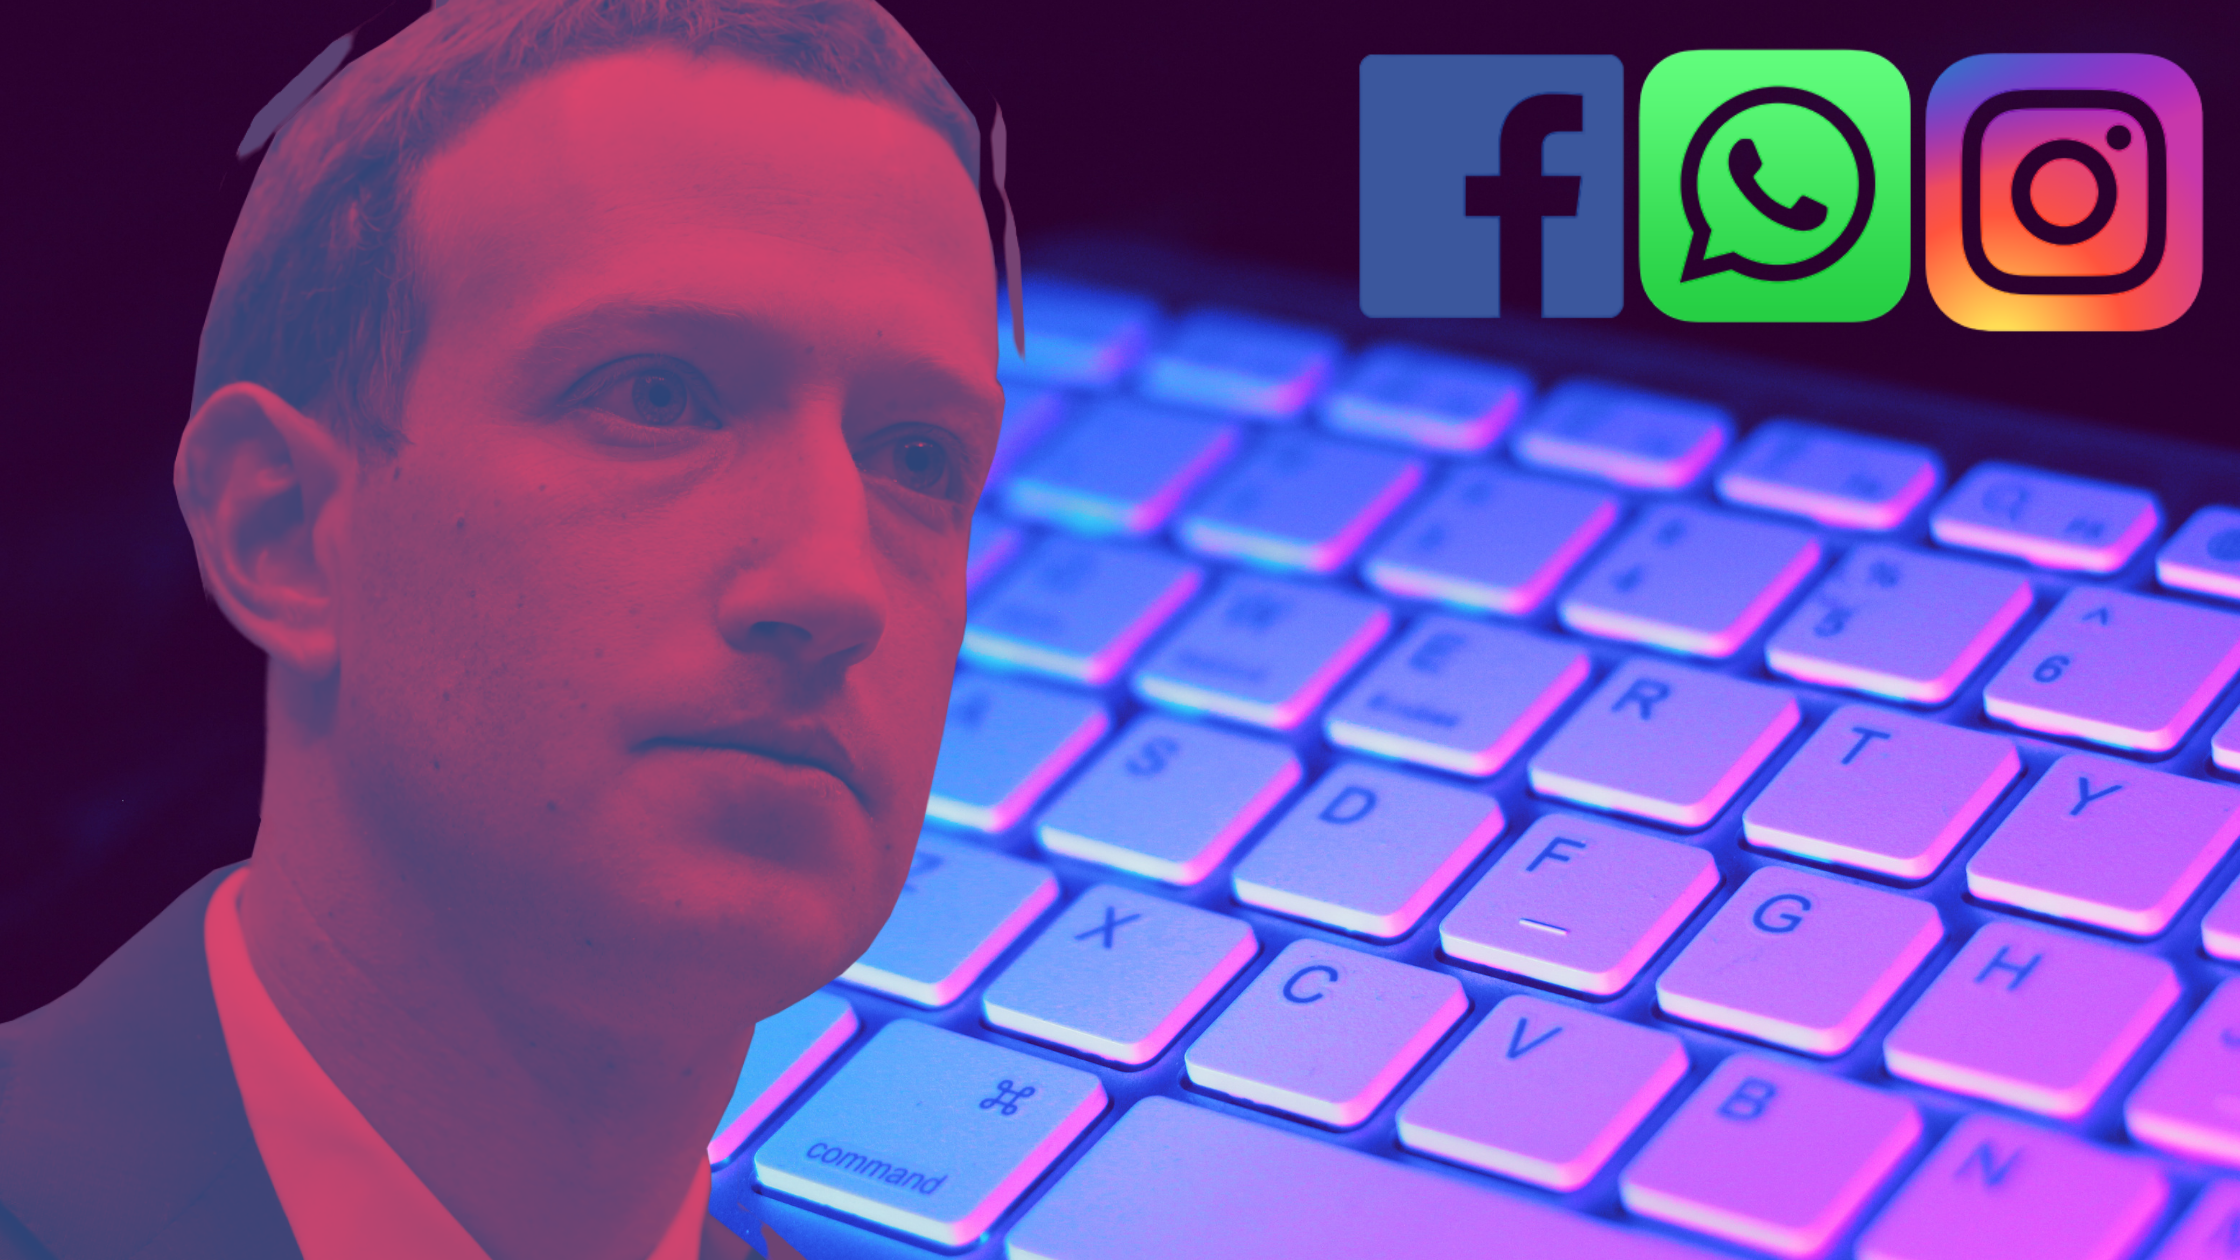 FacebookForty-eight attorneys general and the Federal Trade Commission filed suit against the company Wednesday.